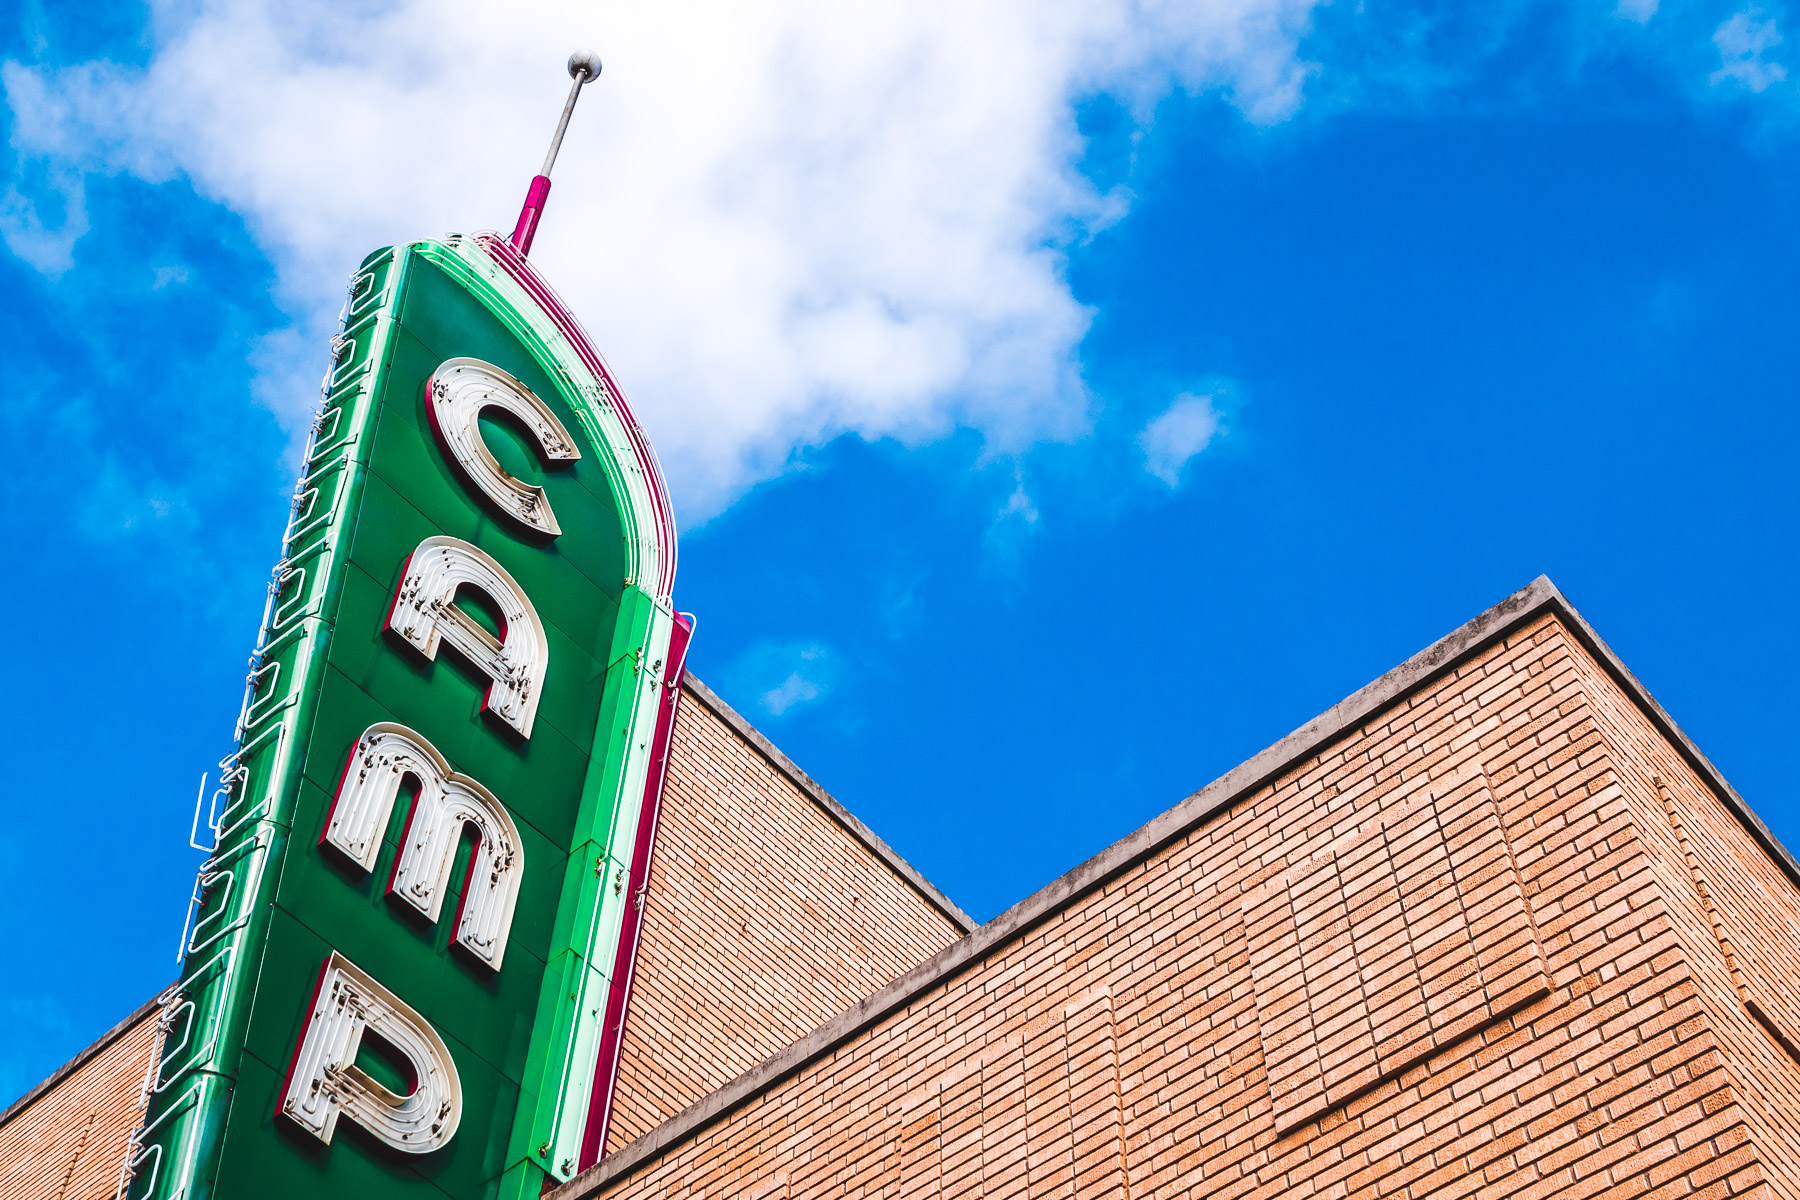 Denton, Texas' Campus Theatre's sign rises into the North Texas sky.